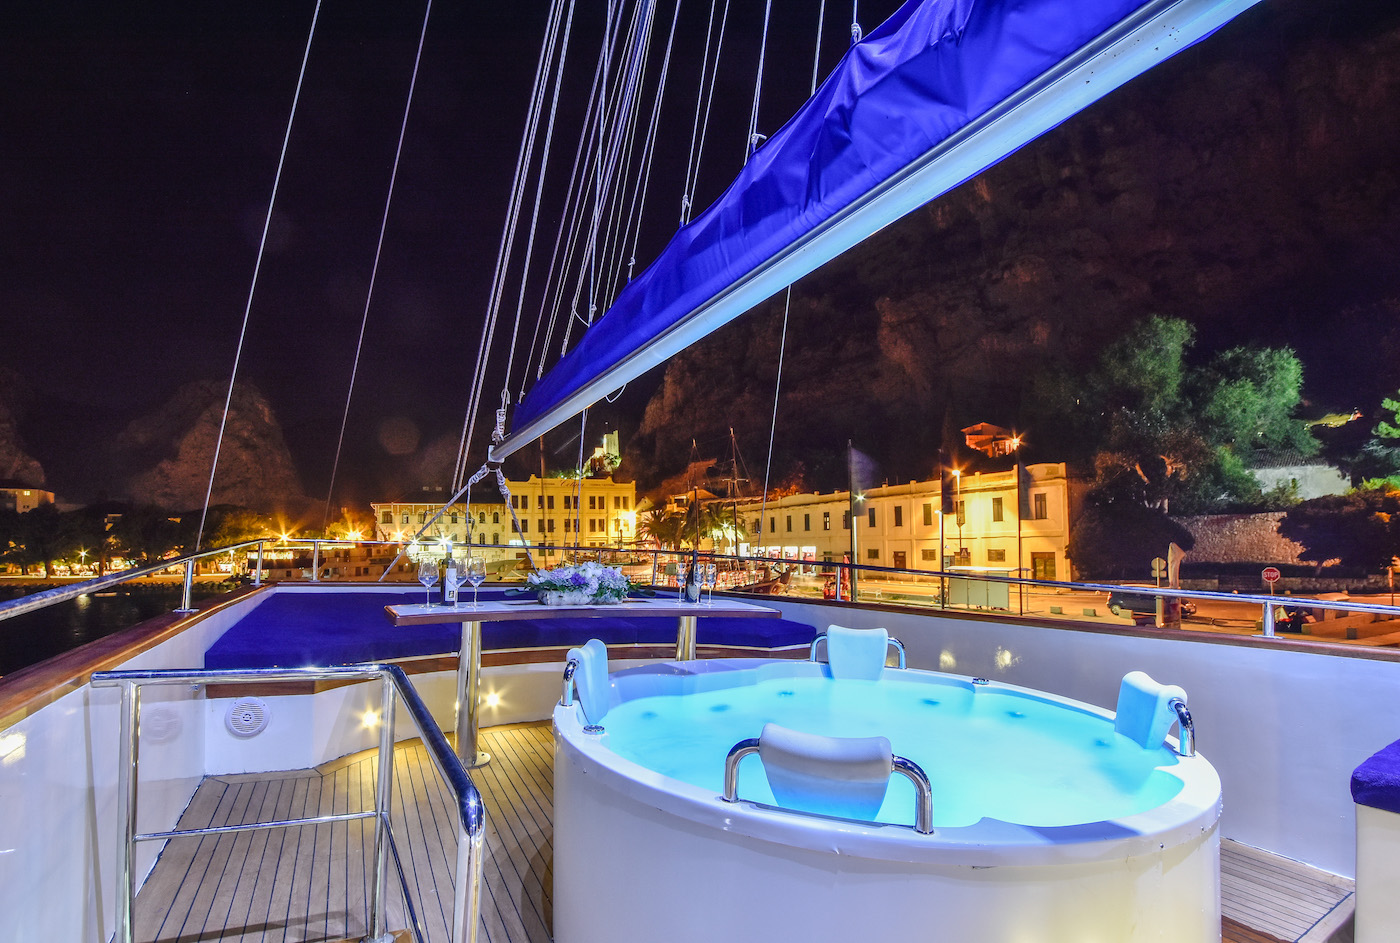 On deck Jacuzzi for romantic and relaxing evenings